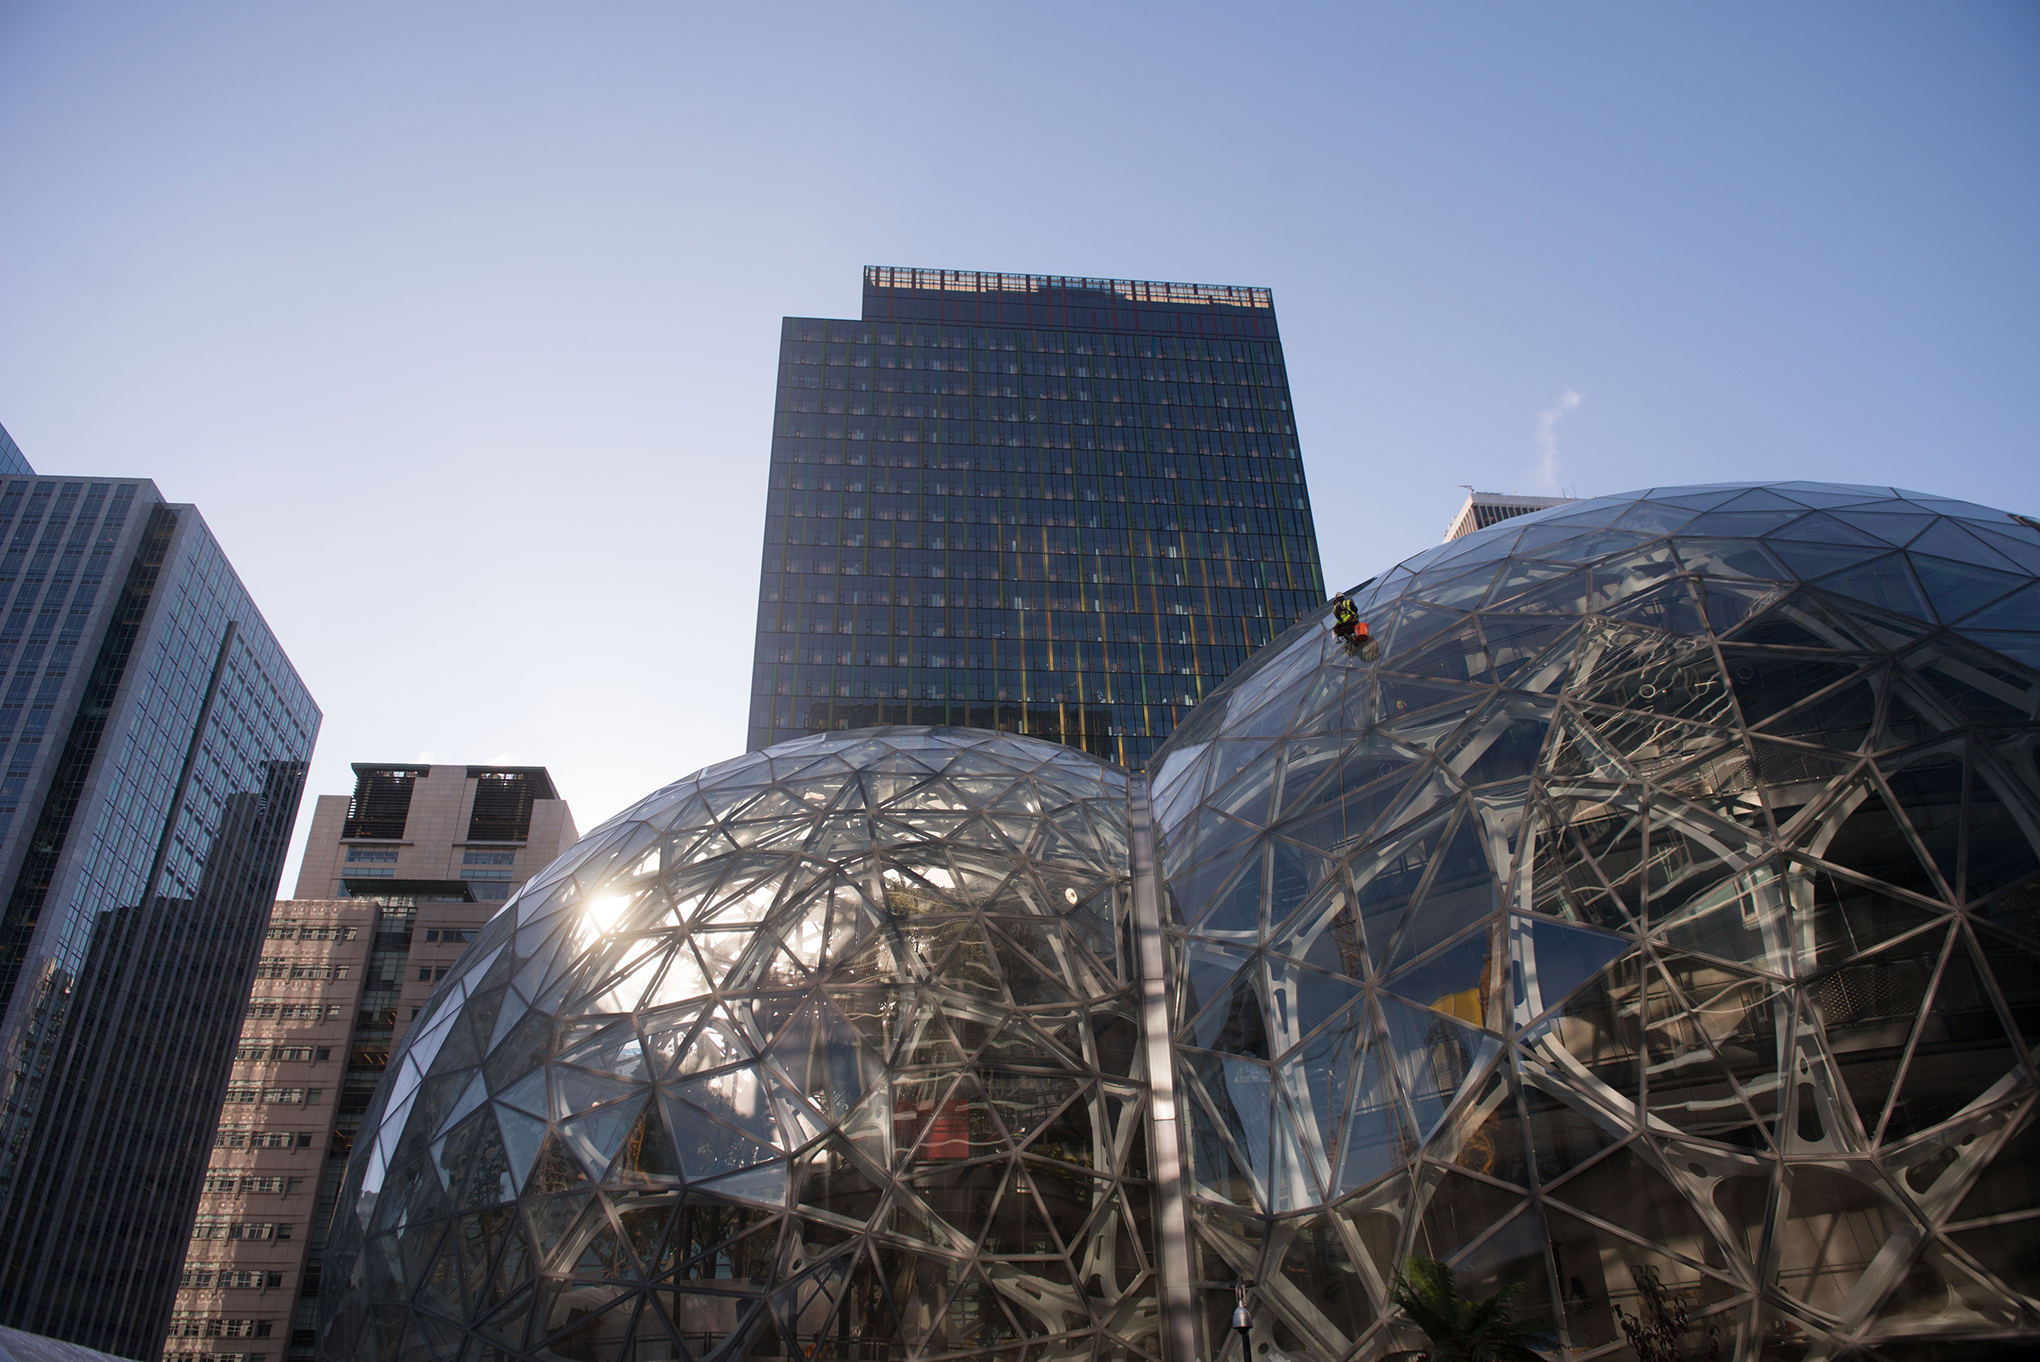 Amazon's current HQ in Seattle has helped drive explosive growth in the city.